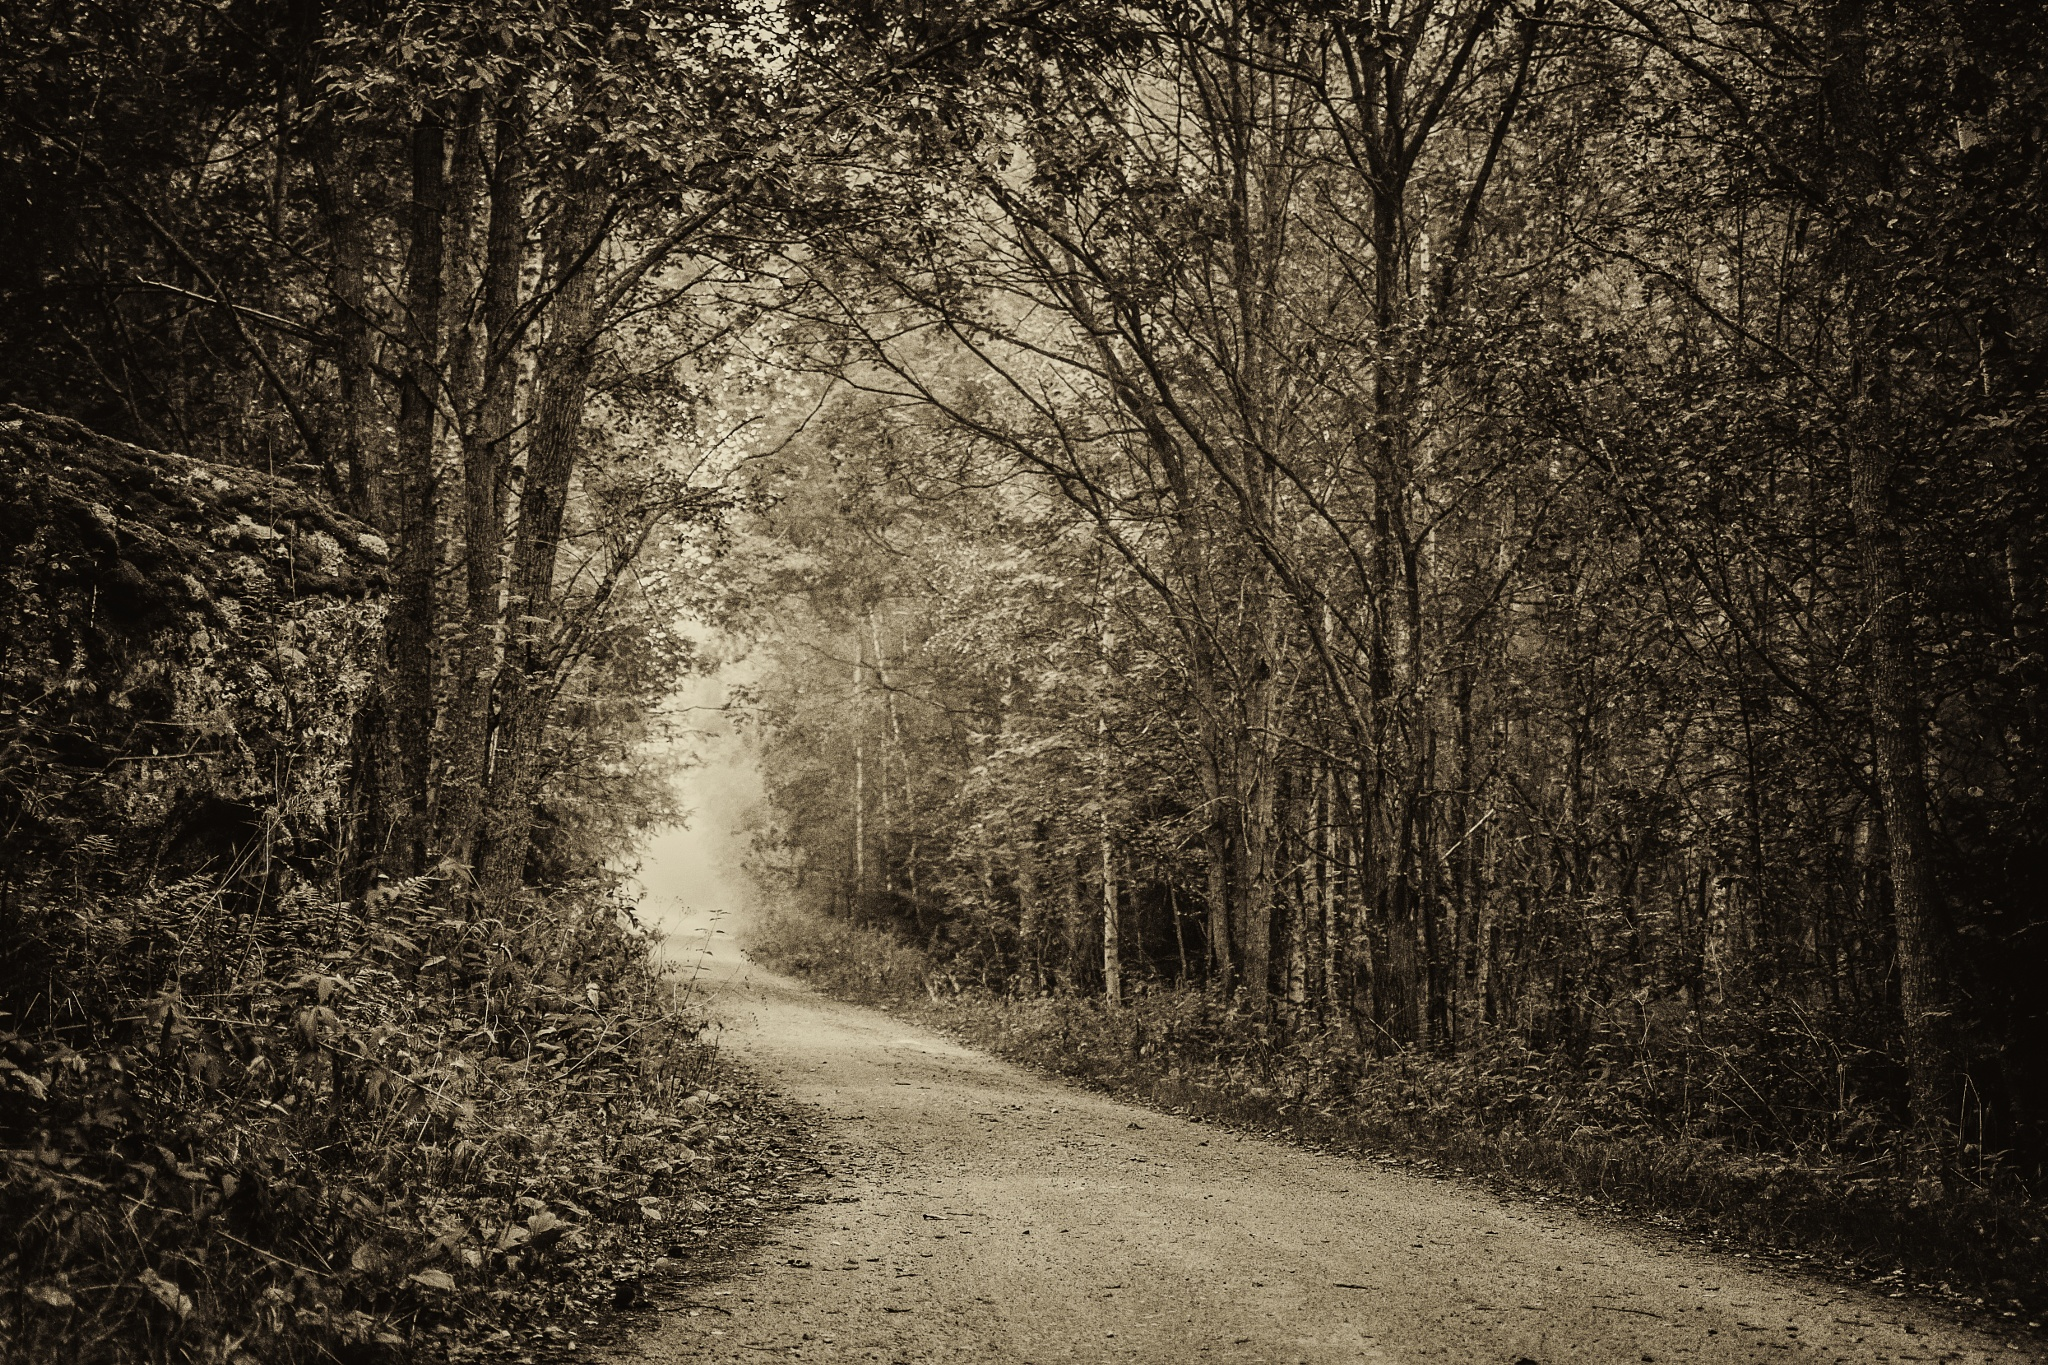 Road to nowhere by Ben Gt